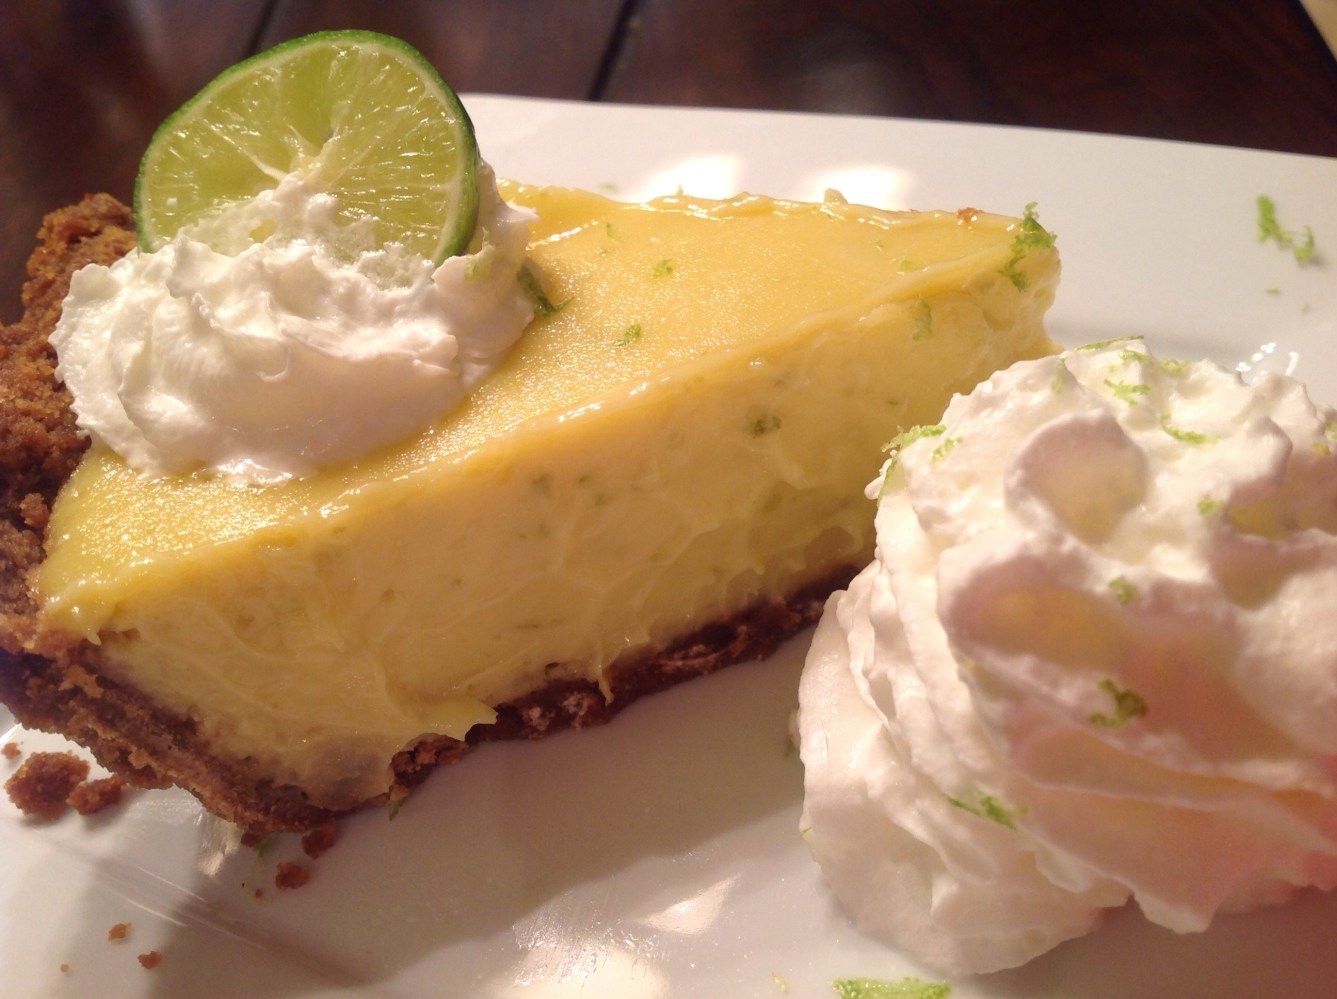 Key lime pie graham cracker crust